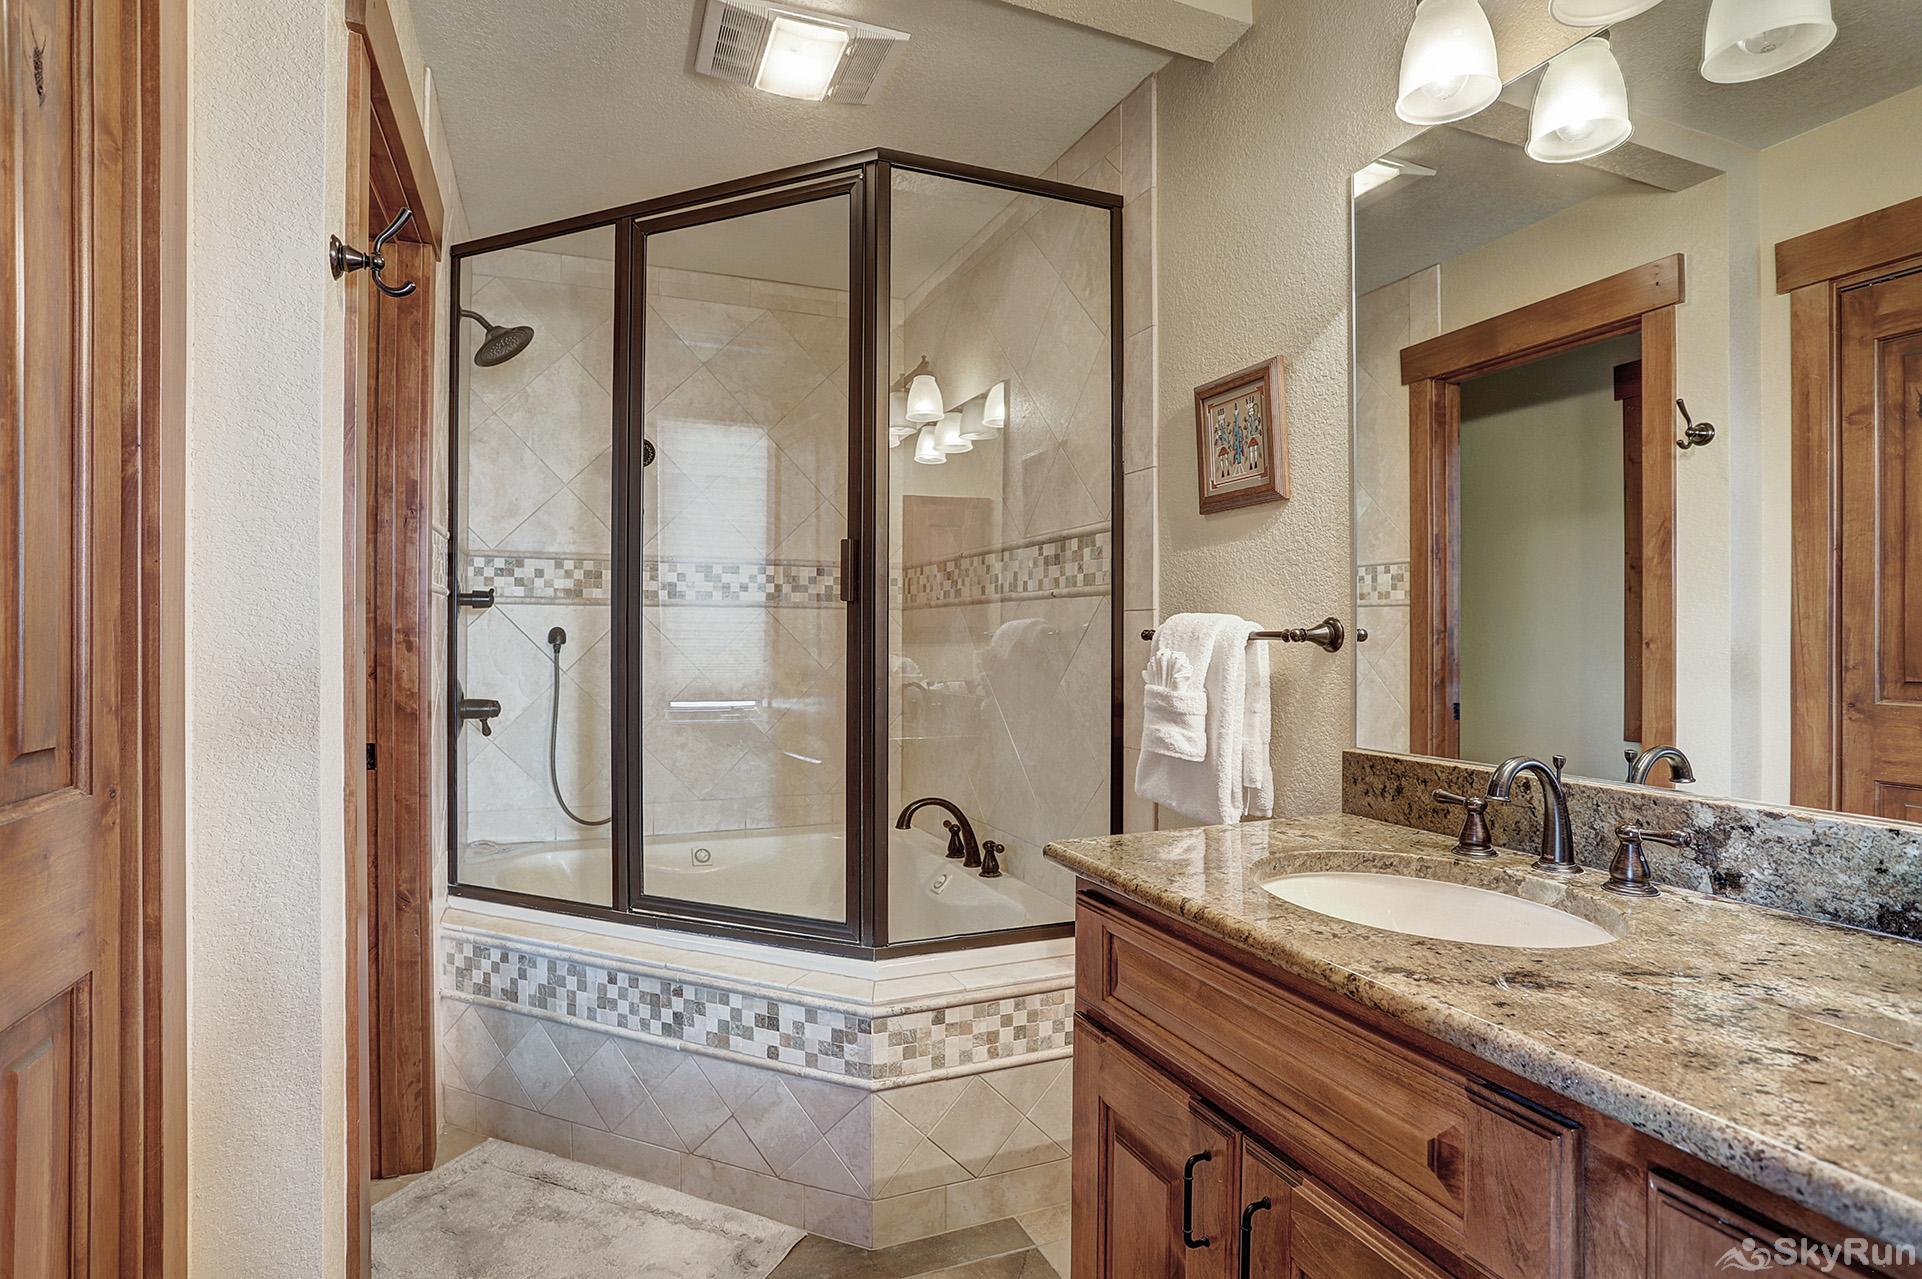 Happy Trails King master bedroom ensuite bath